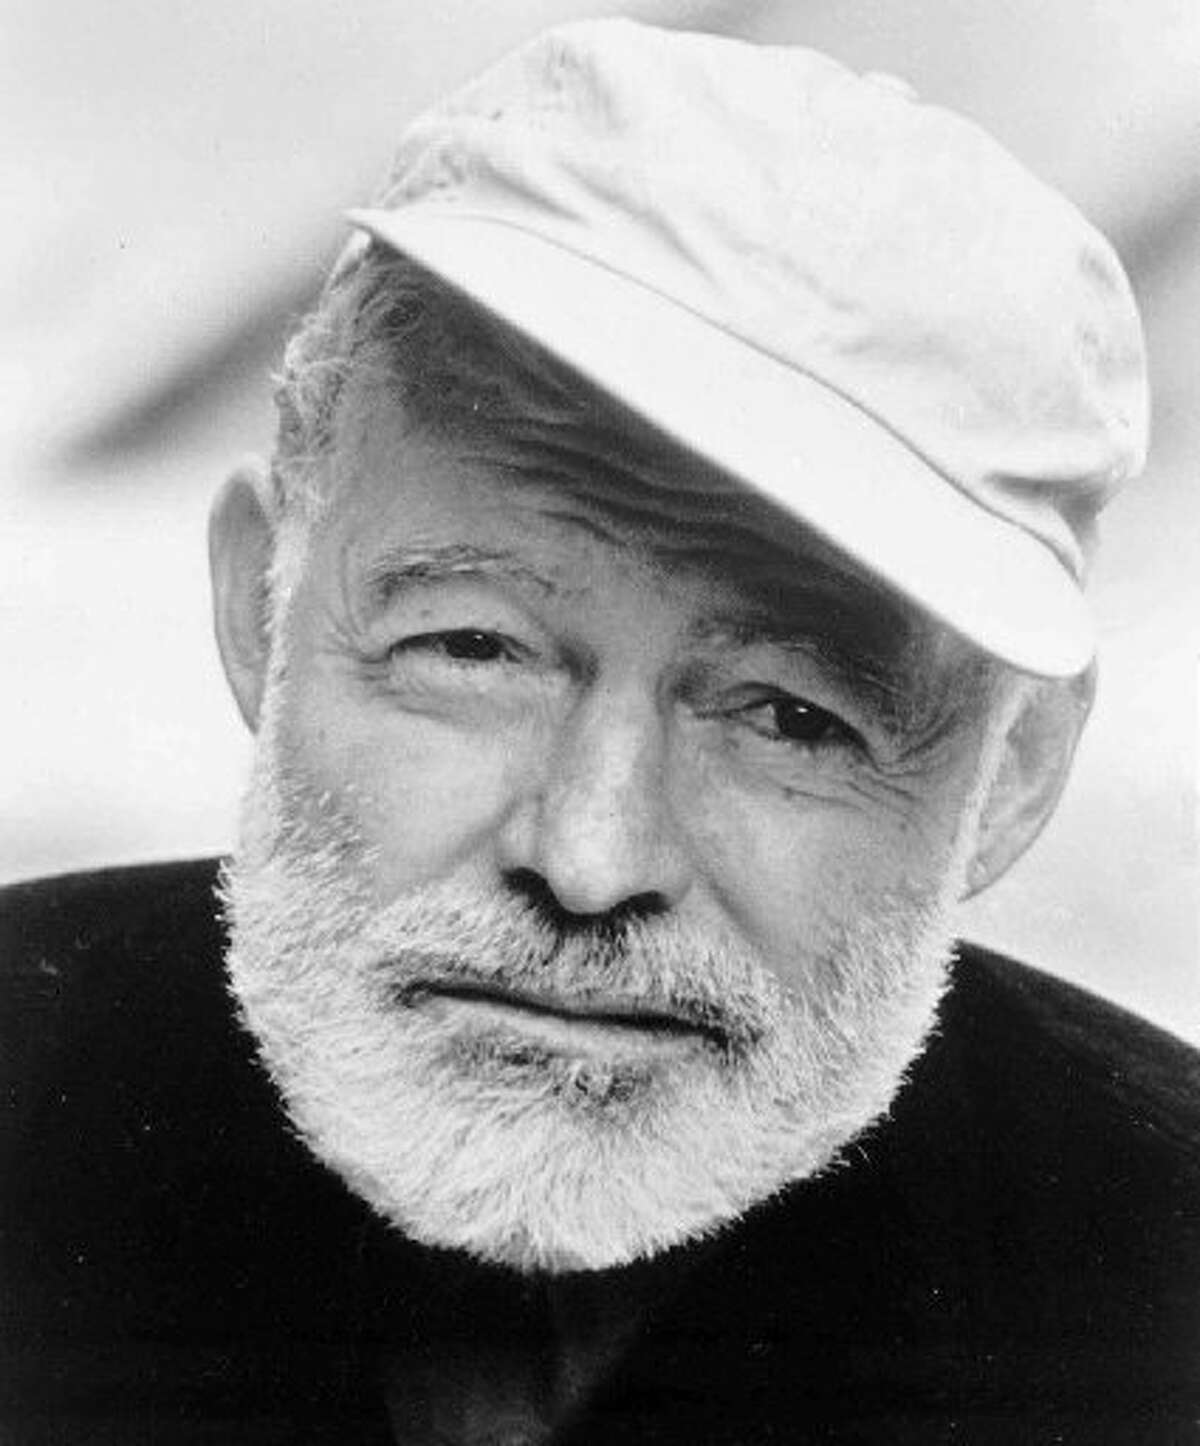 And still Ernest Hemingway praised the novel as essentially the first great work of American fiction, but he advised readers to skip the last section.Today, schools still encounter protests due to the racial epithets it uses. Publishers have even put out bowdlerized versions eliminating the controversial terms.